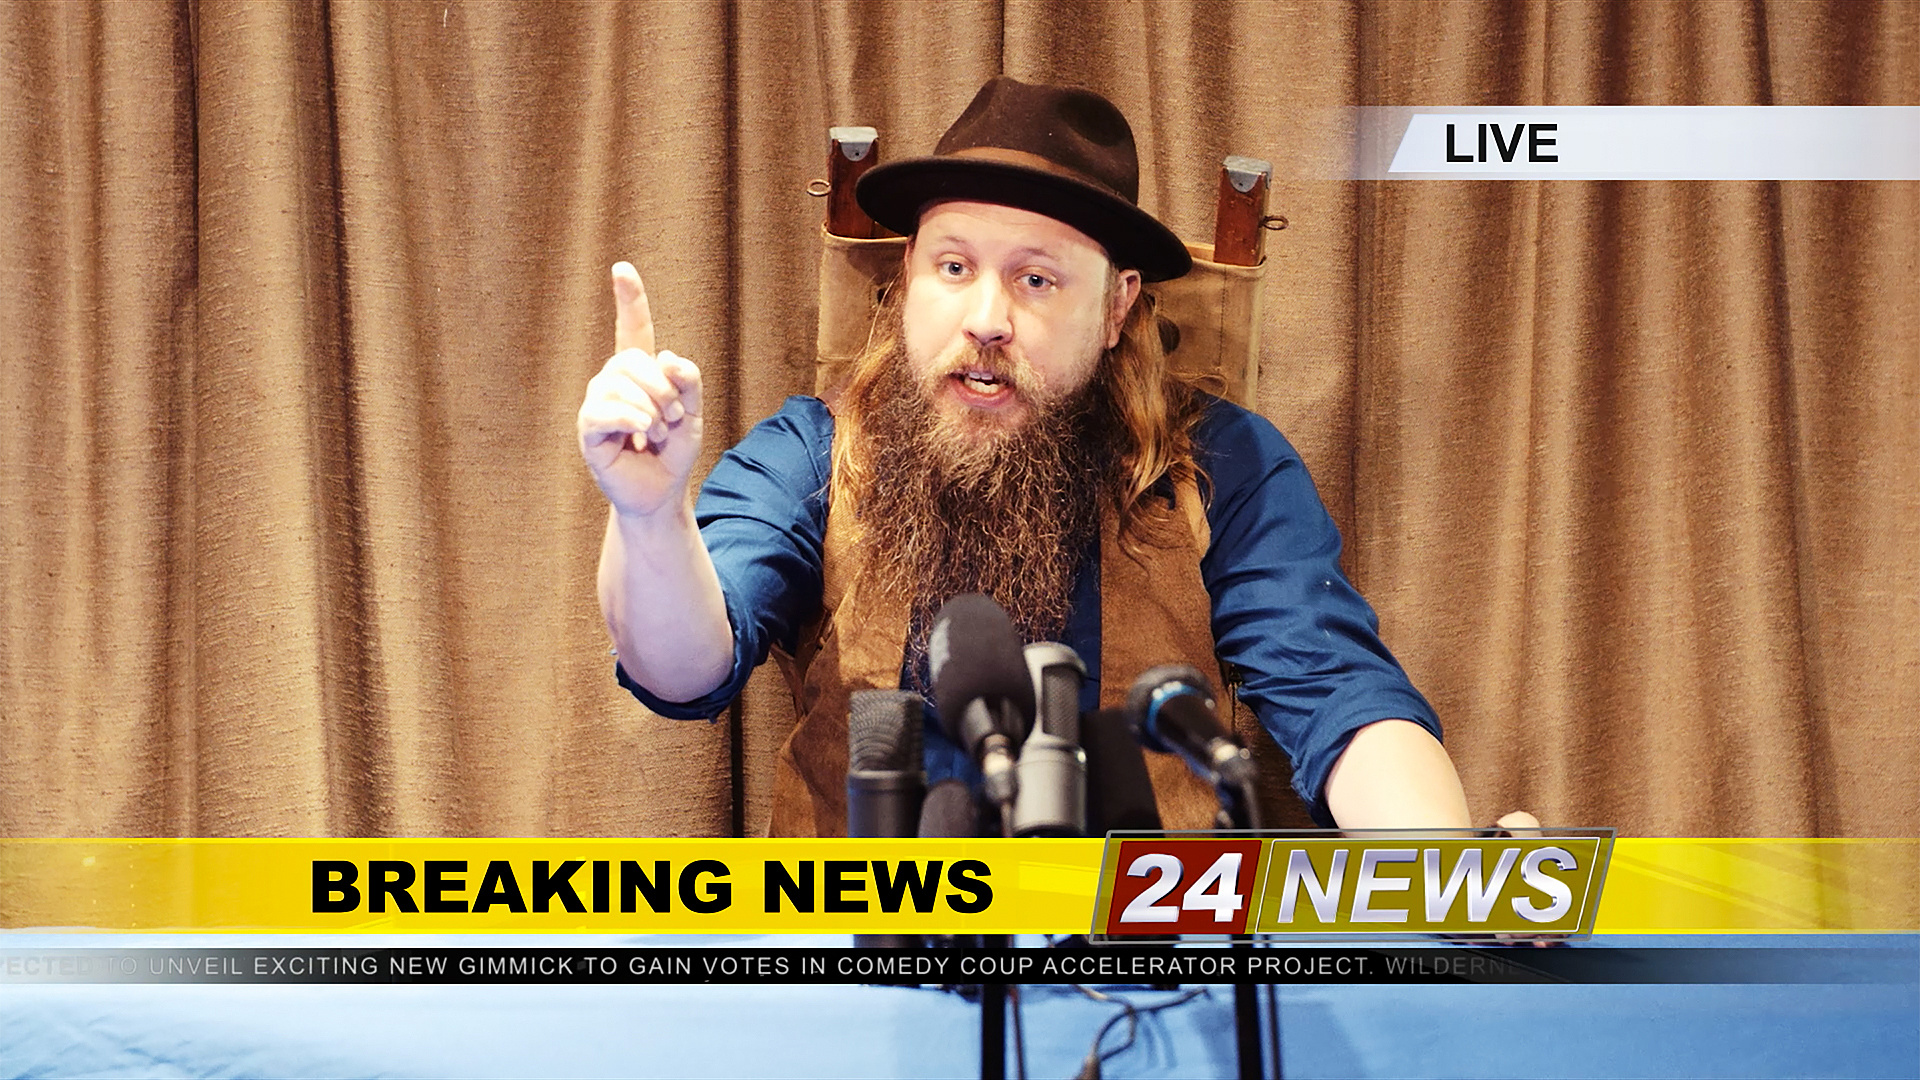 Wilderness Man press conference